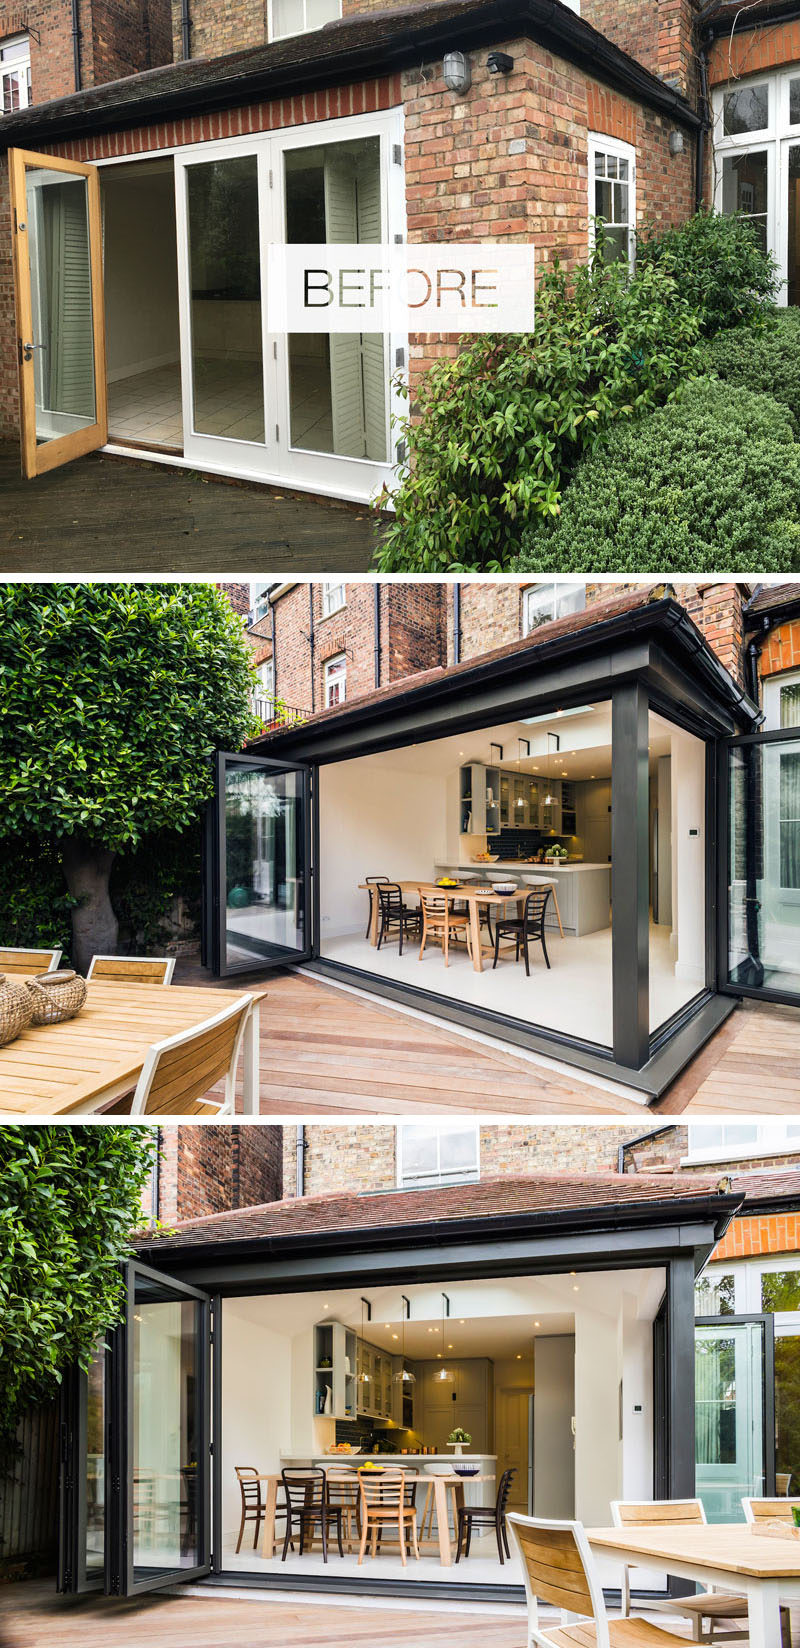 In this house renovation, folding sliding doors in dark grey aluminium replaced the original doors and opened up the interior to the garden, creating an indoor/outdoor living environment. #Renovation #Indoor/OutdoorLiving